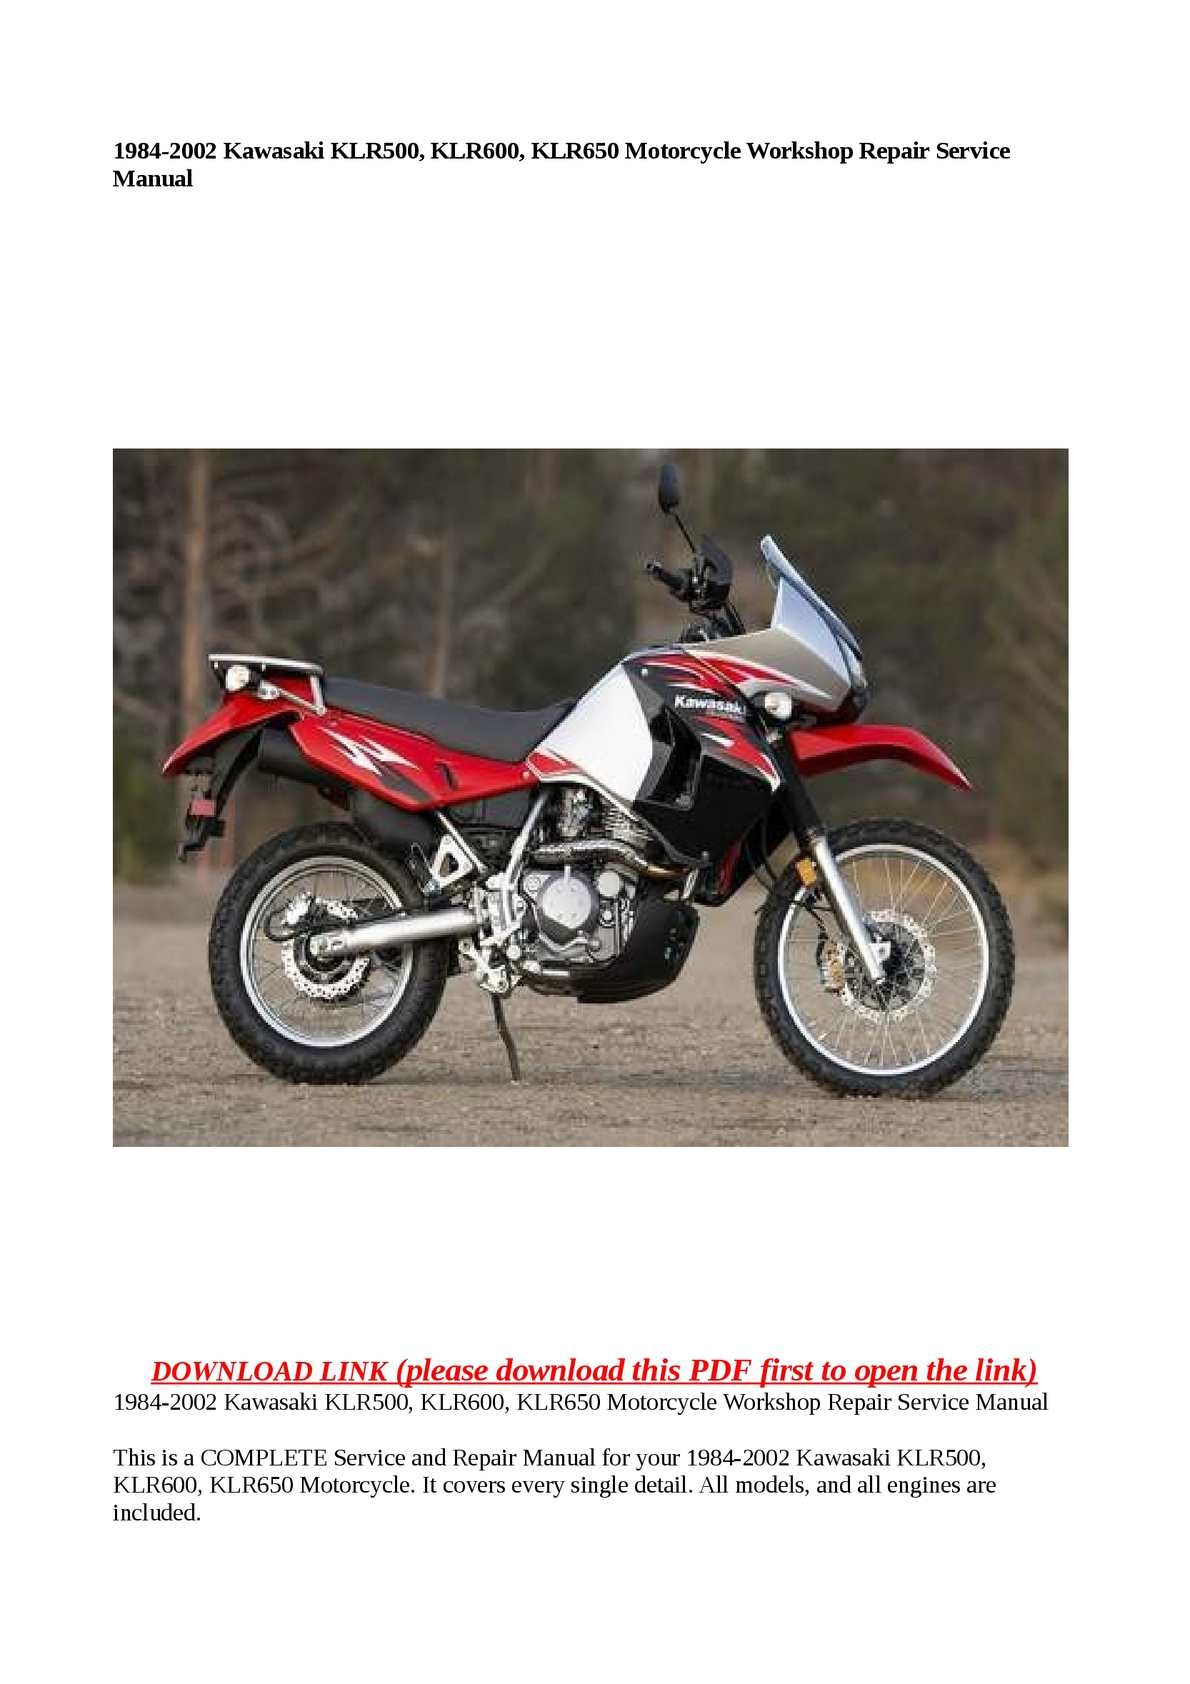 Calaméo - 1984-2002 Kawasaki KLR500, KLR600, KLR650 Motorcycle Workshop  Repair Service Manual